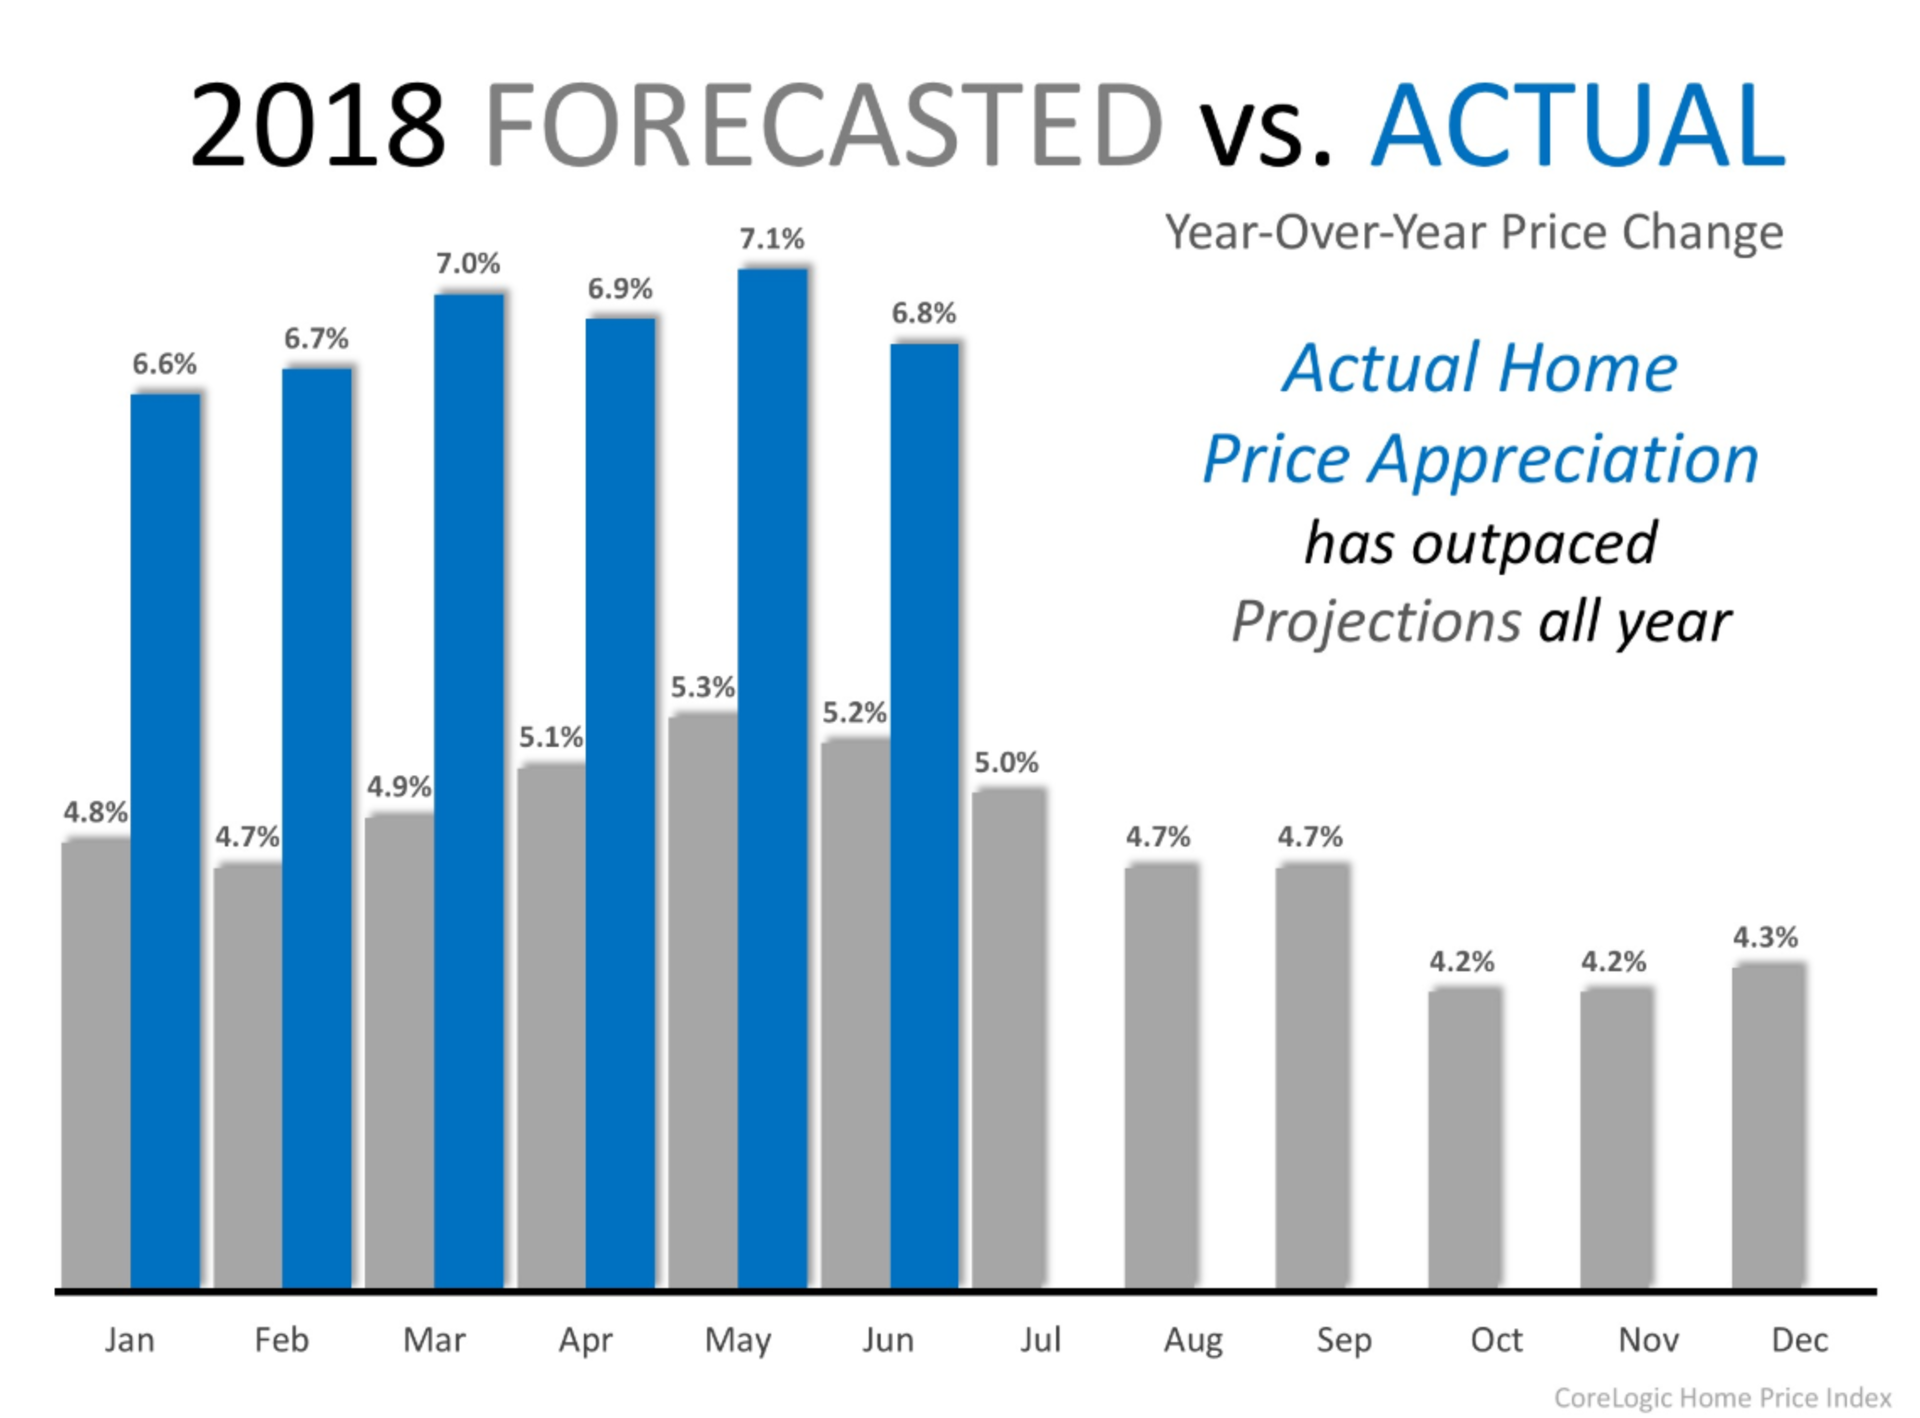 Have Home Prices Appreciated in 2018?